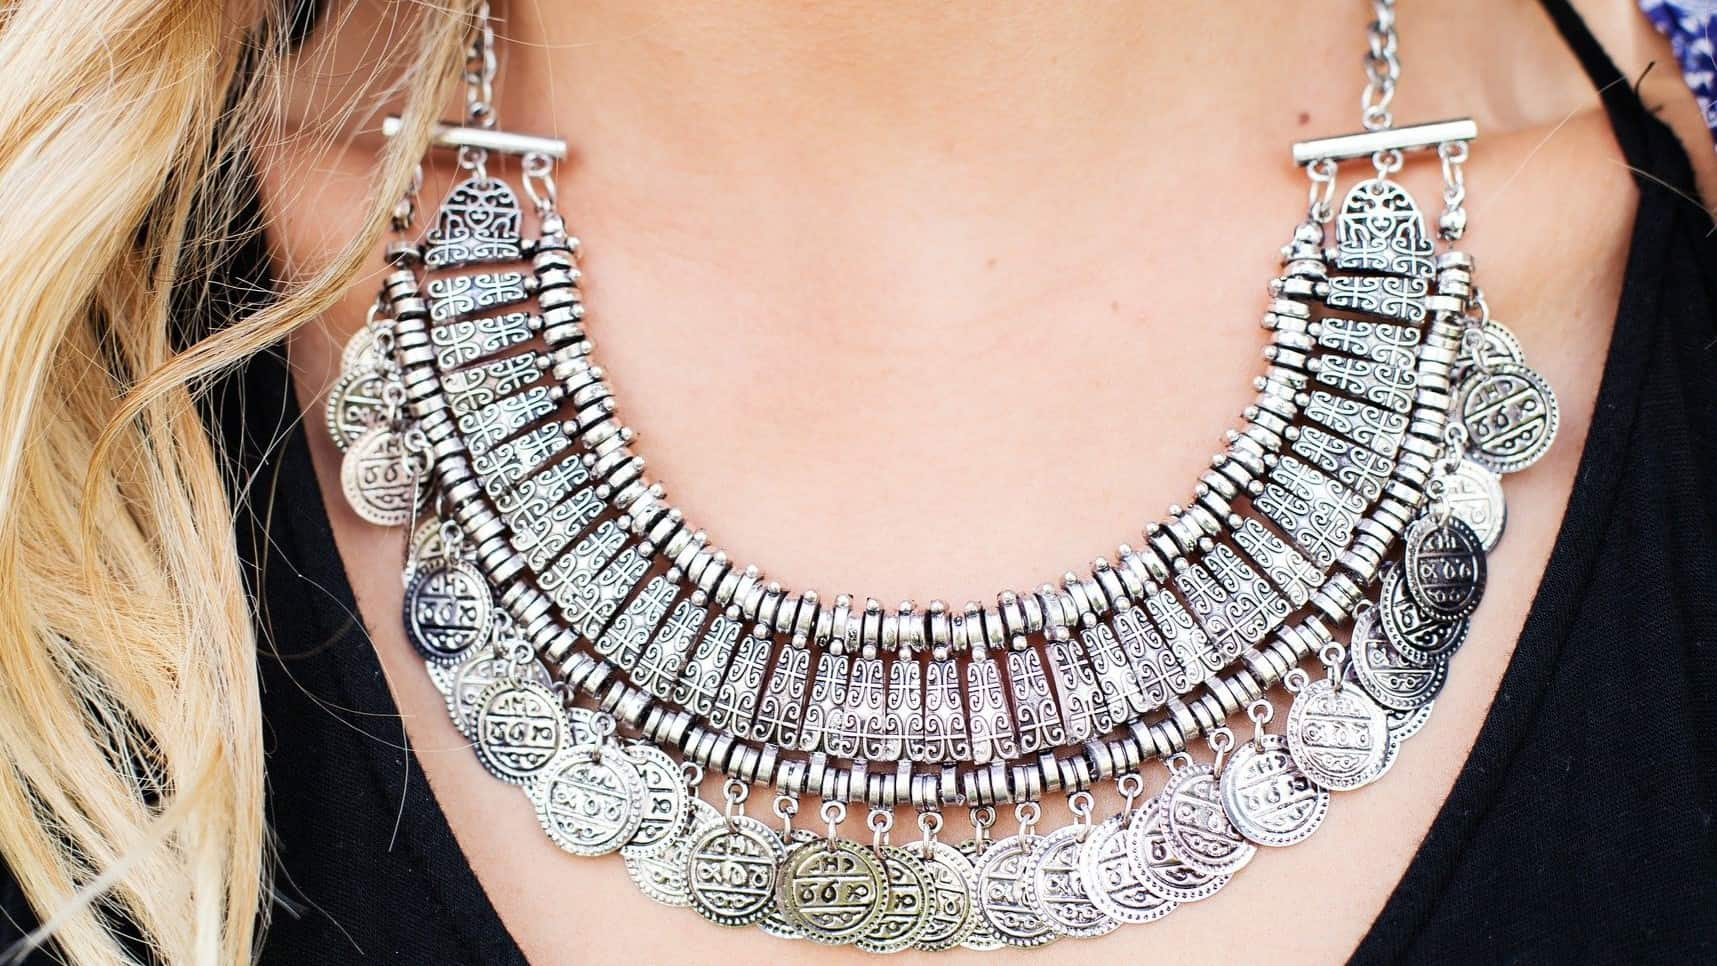 6 Ways to Properly Wear Your Silver Jewellery